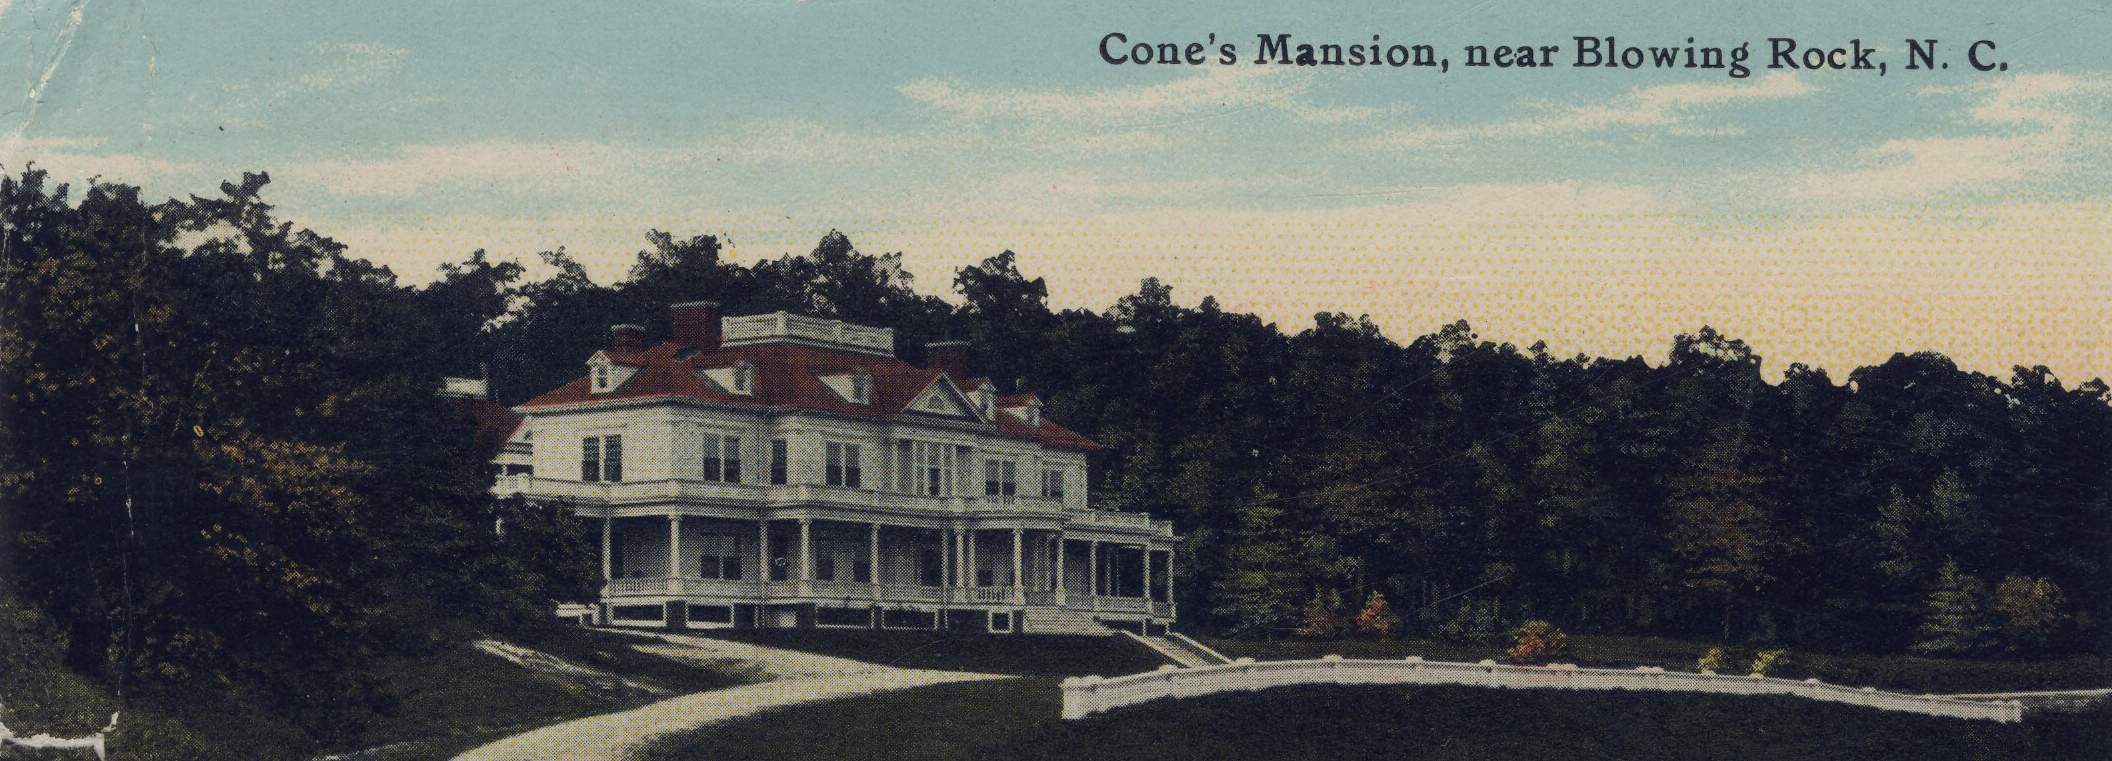 Modern Visions, Mountain Views: The Cones of Flat Top Manor